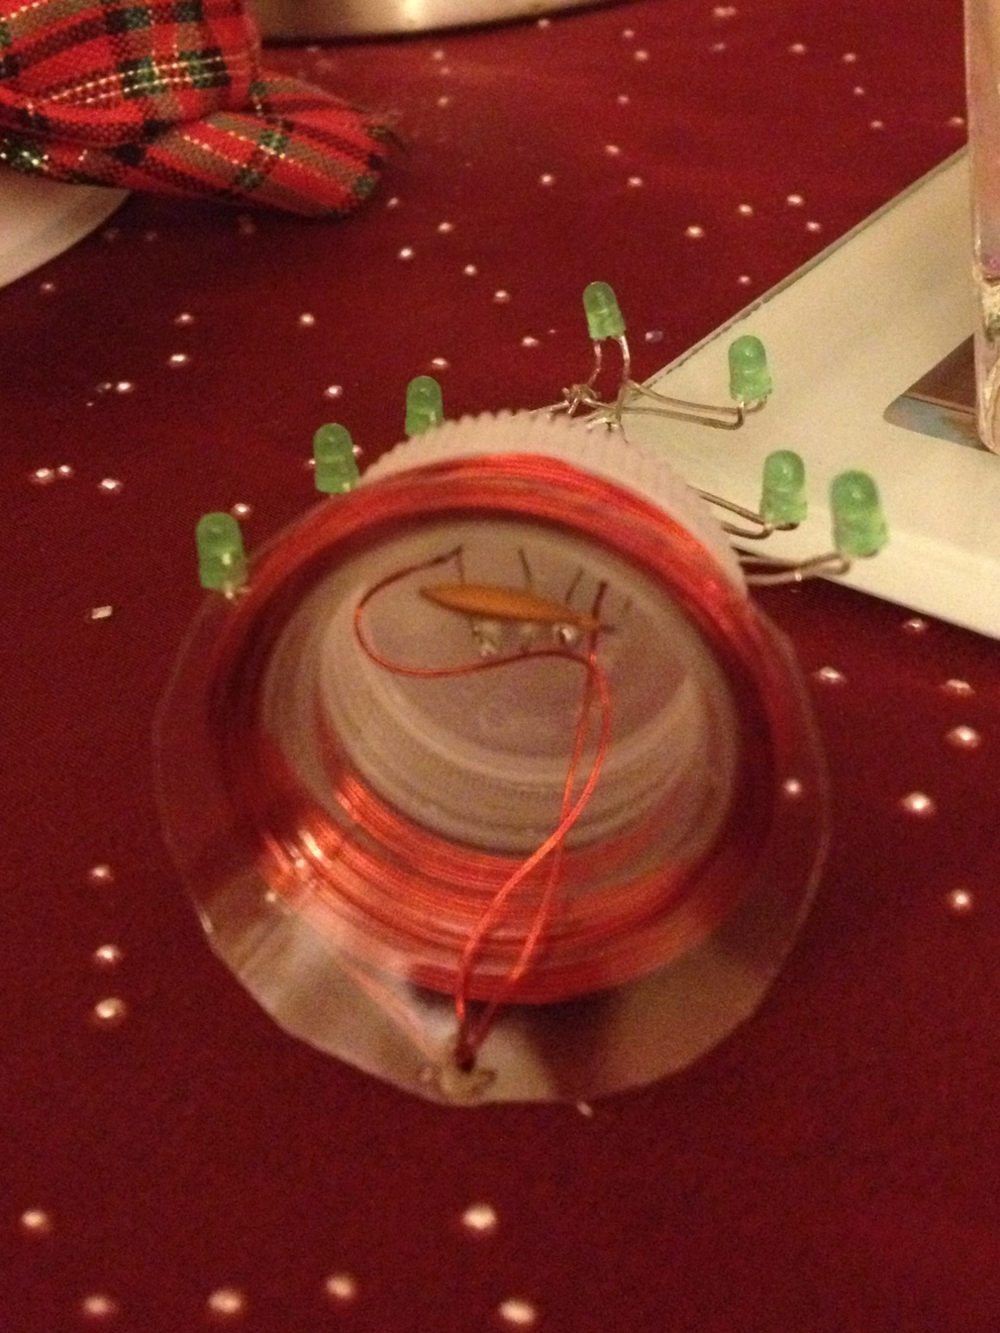 Secondary capacitor hiding beneath the Christmas tree.